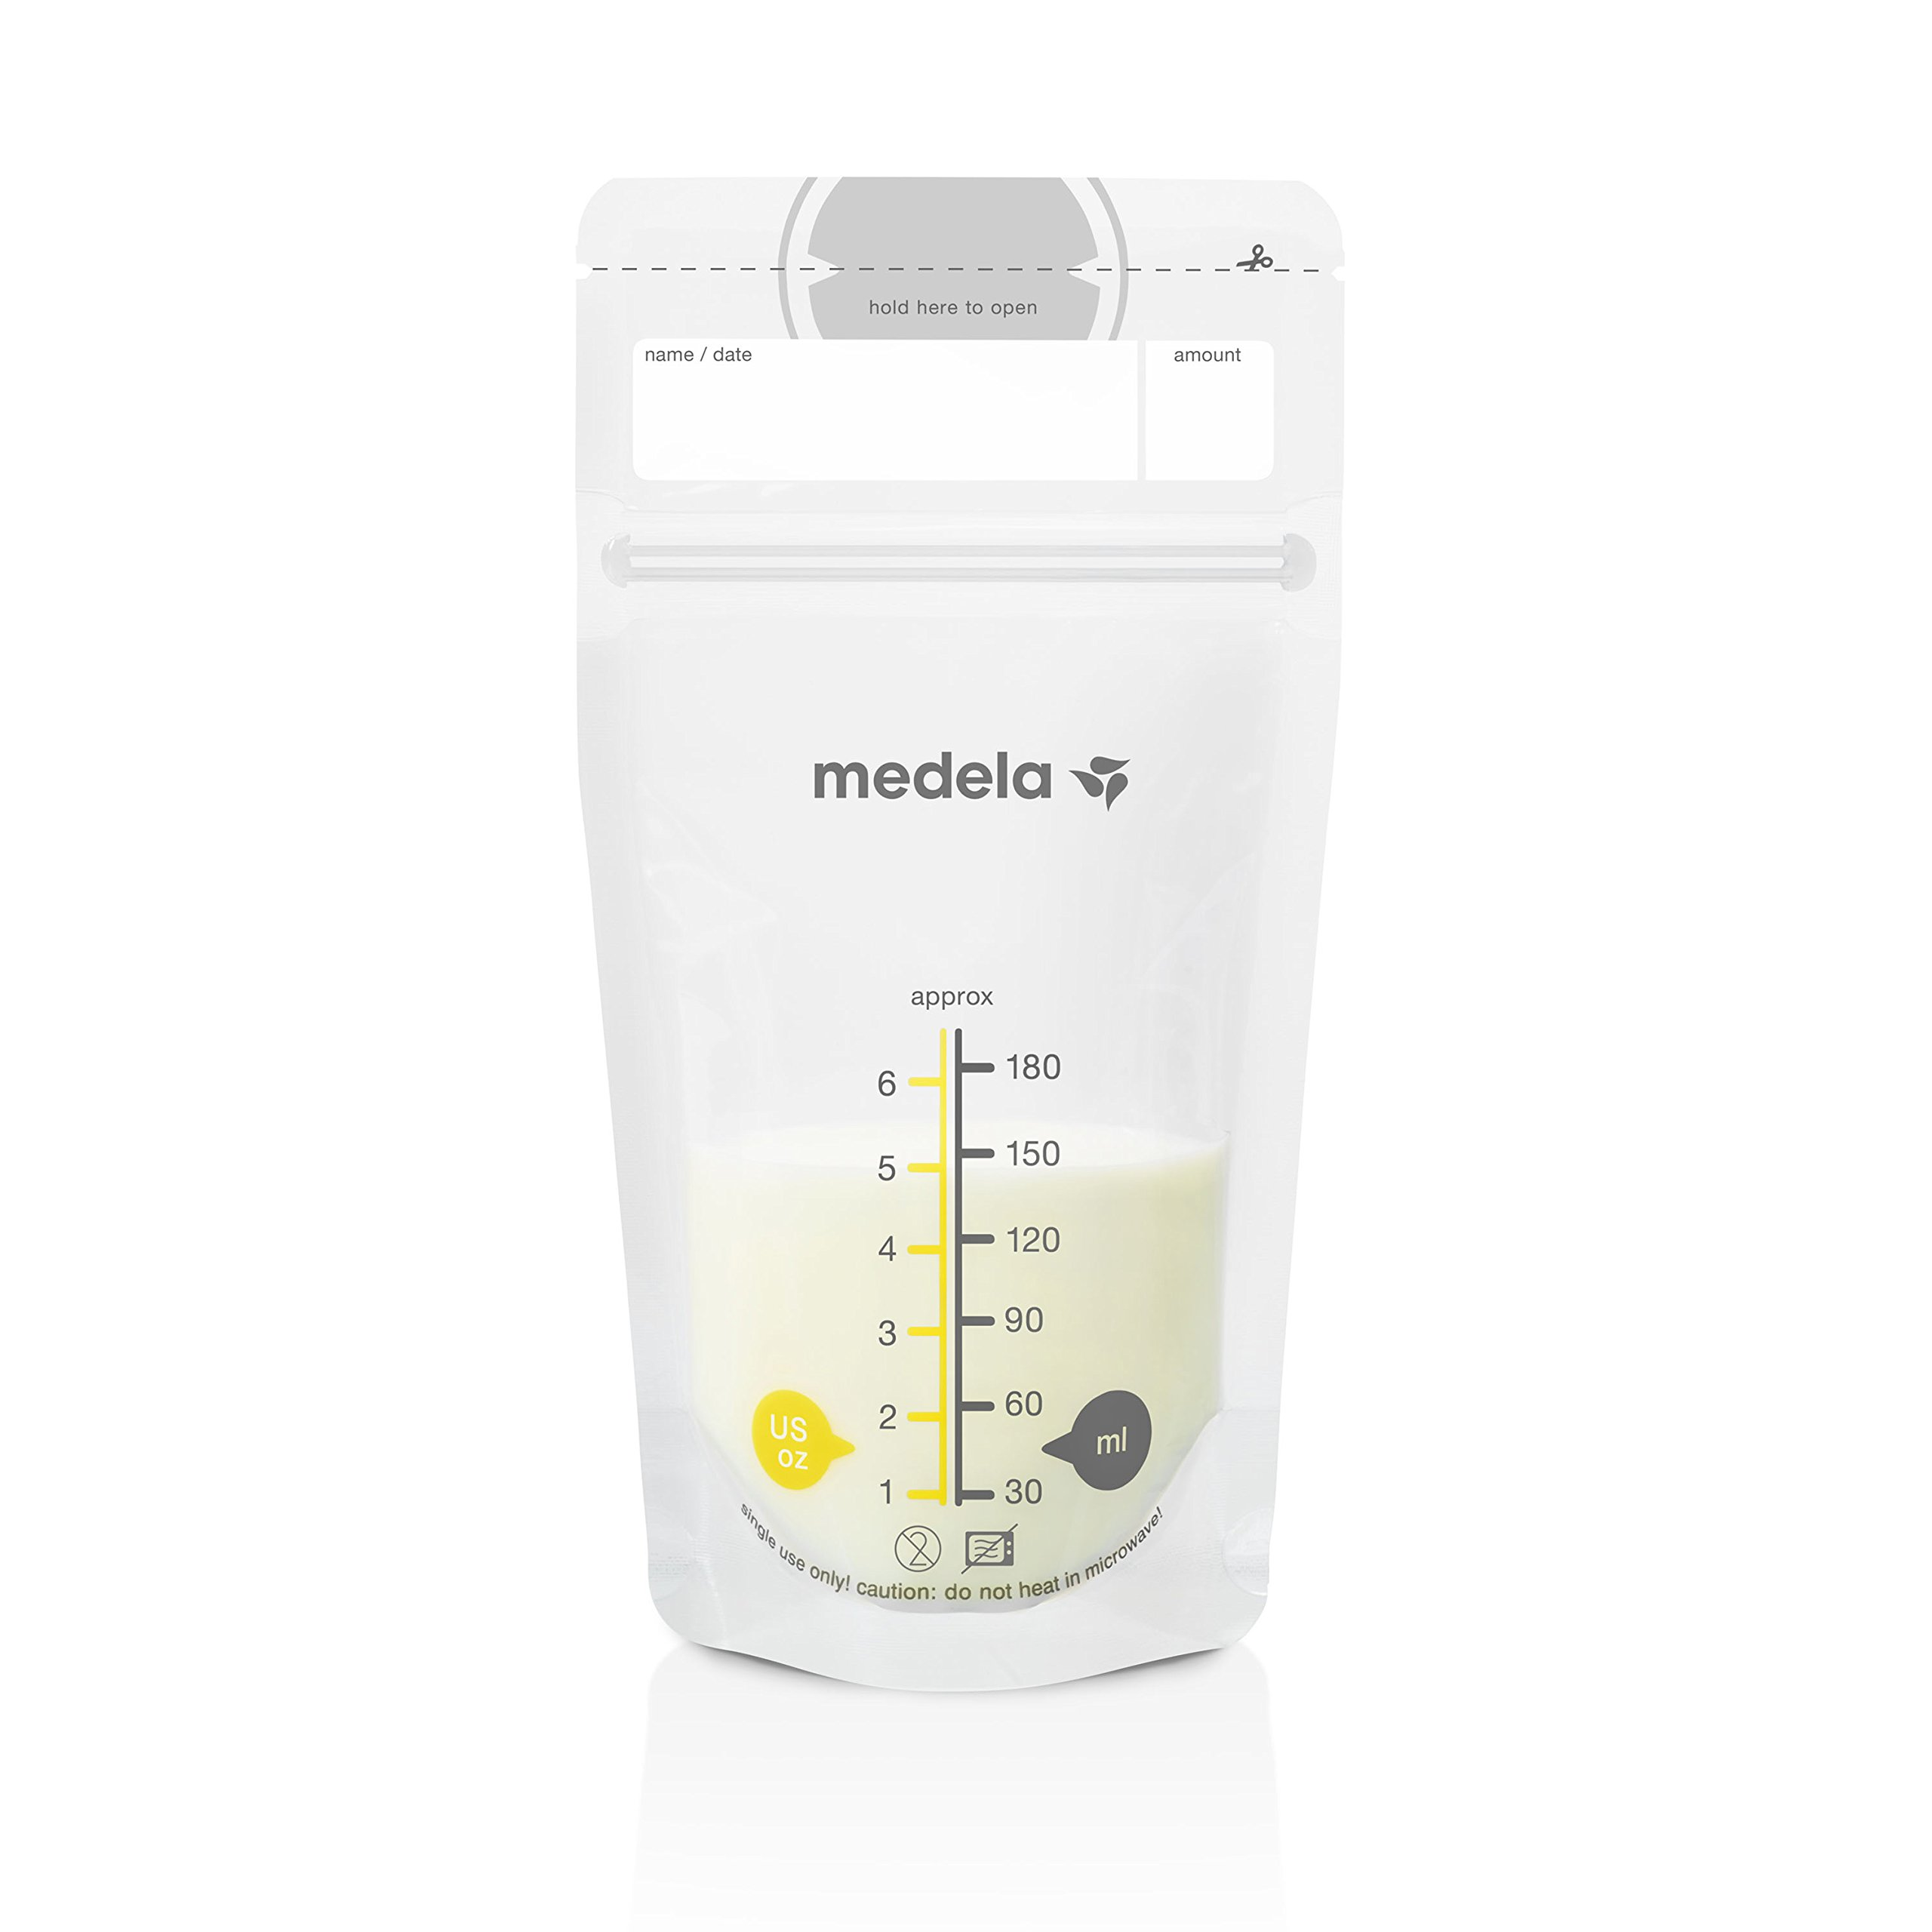 Medela Breast Milk Storage Bags, 100 Count, Ready to Use Breastmilk Bags for Breastfeeding, Self Standing Bag, Space Saving Flat Profile, Hygienically Pre-Sealed,  6 Ounce by Medela